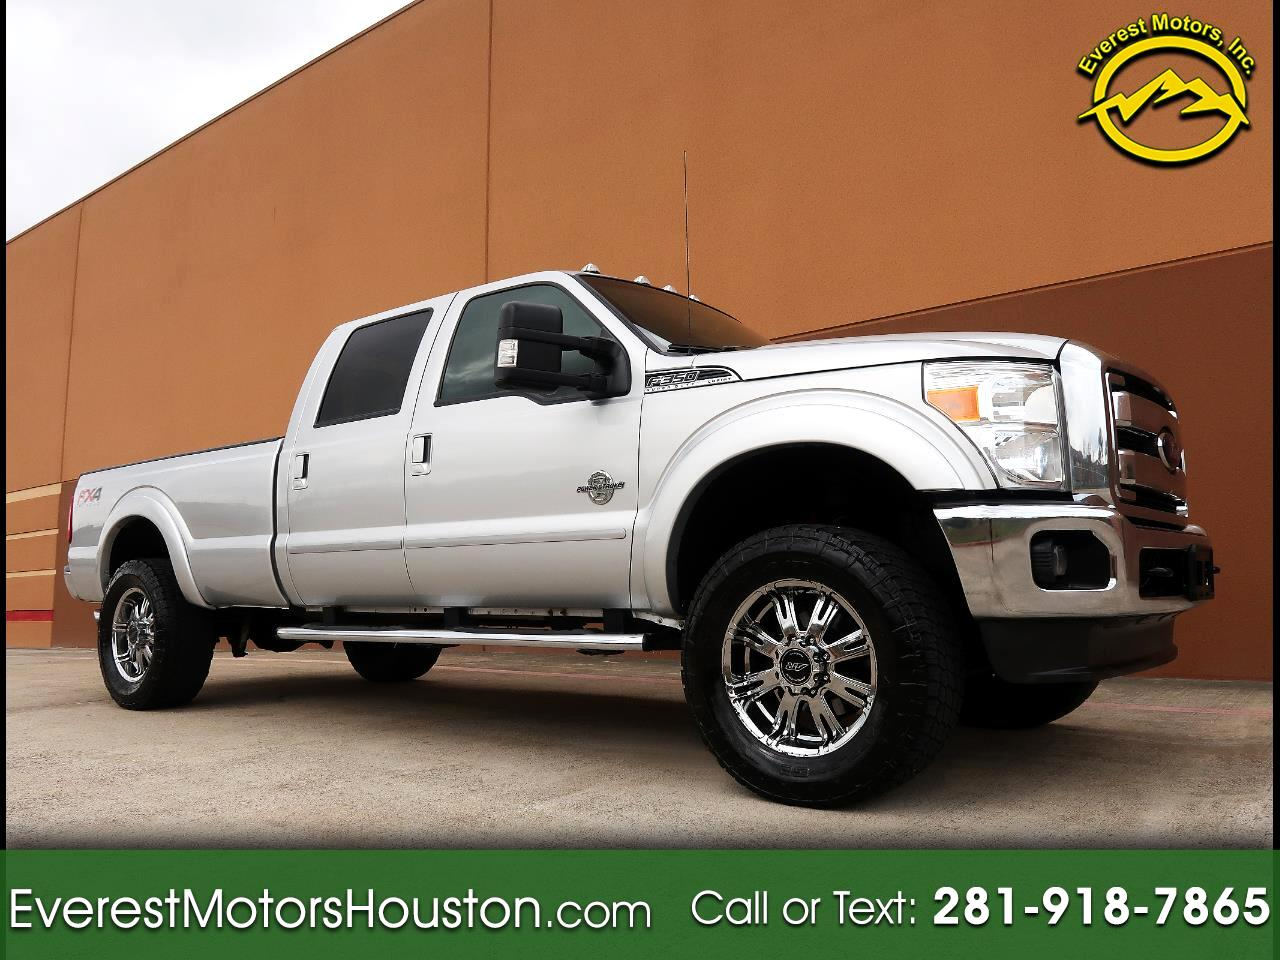 2012 Ford F-350 SD LARIAT CREW CAB LONG BED 4WD NAV CAM DVD